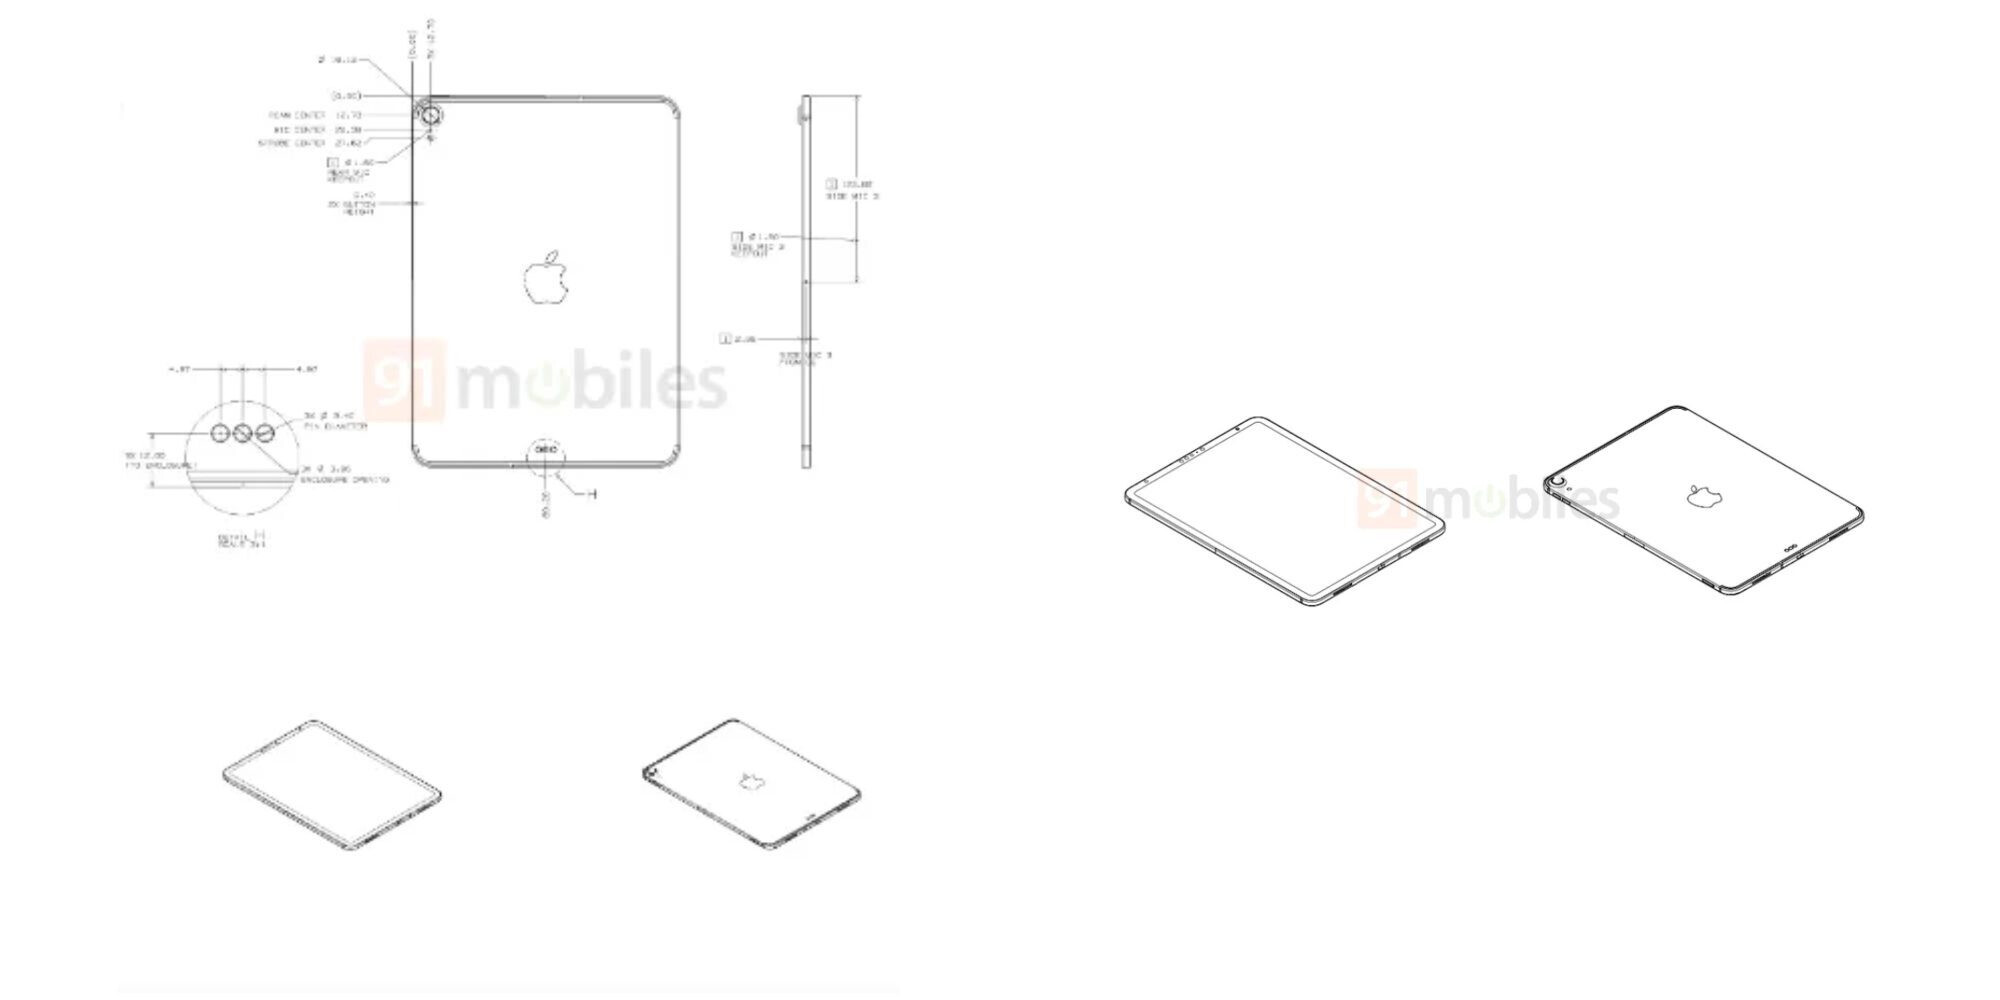 Apple iPad 2020 with USB-C and Face ID - After iPad Air 4, supposedly iPad 2020 expires with Pro design and key difference in specifications